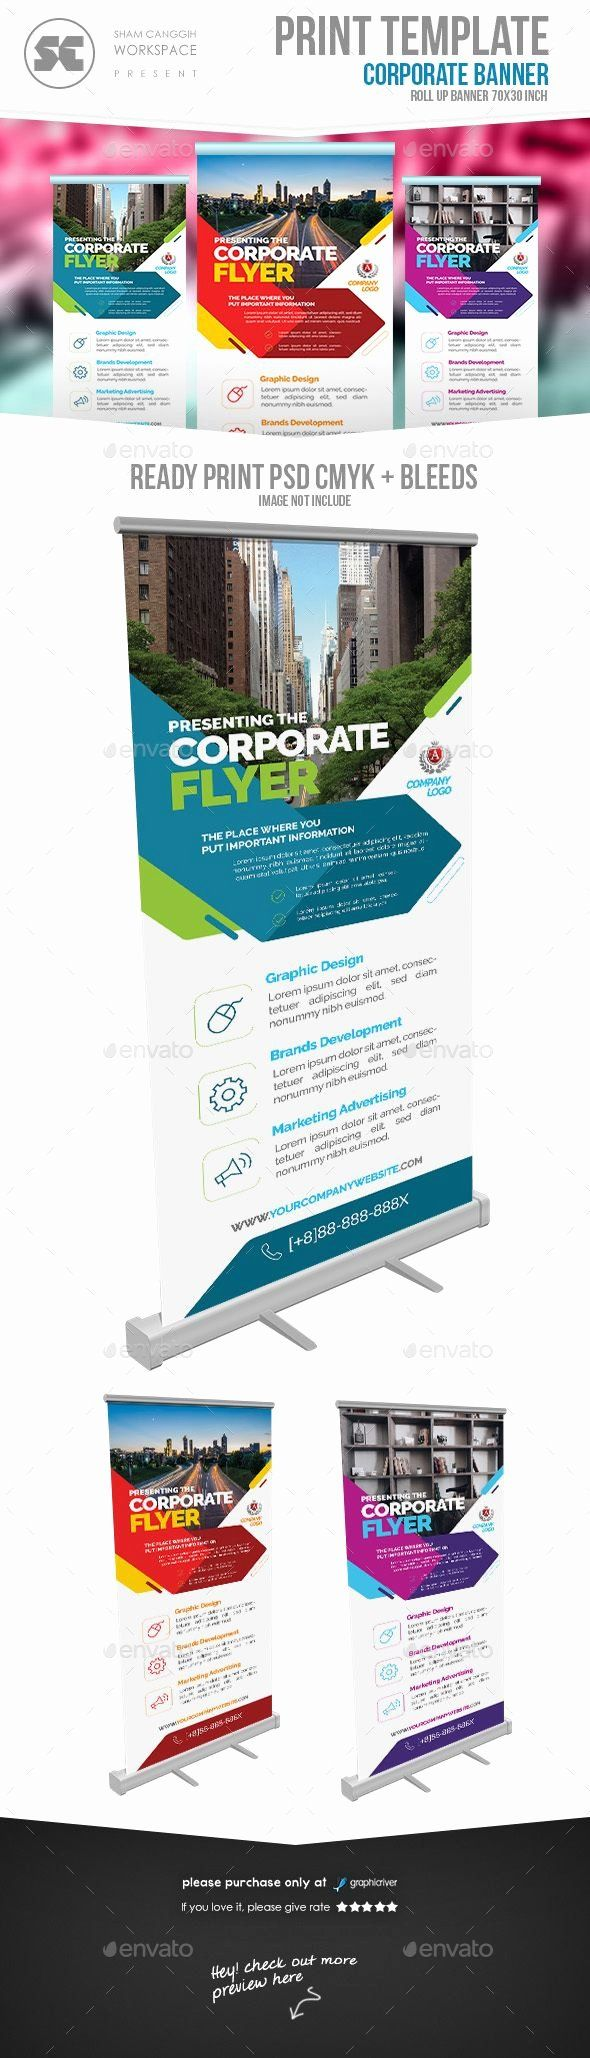 Retractable Banner Template Psd Awesome Corporate Roll Up Banner Signage Print T...